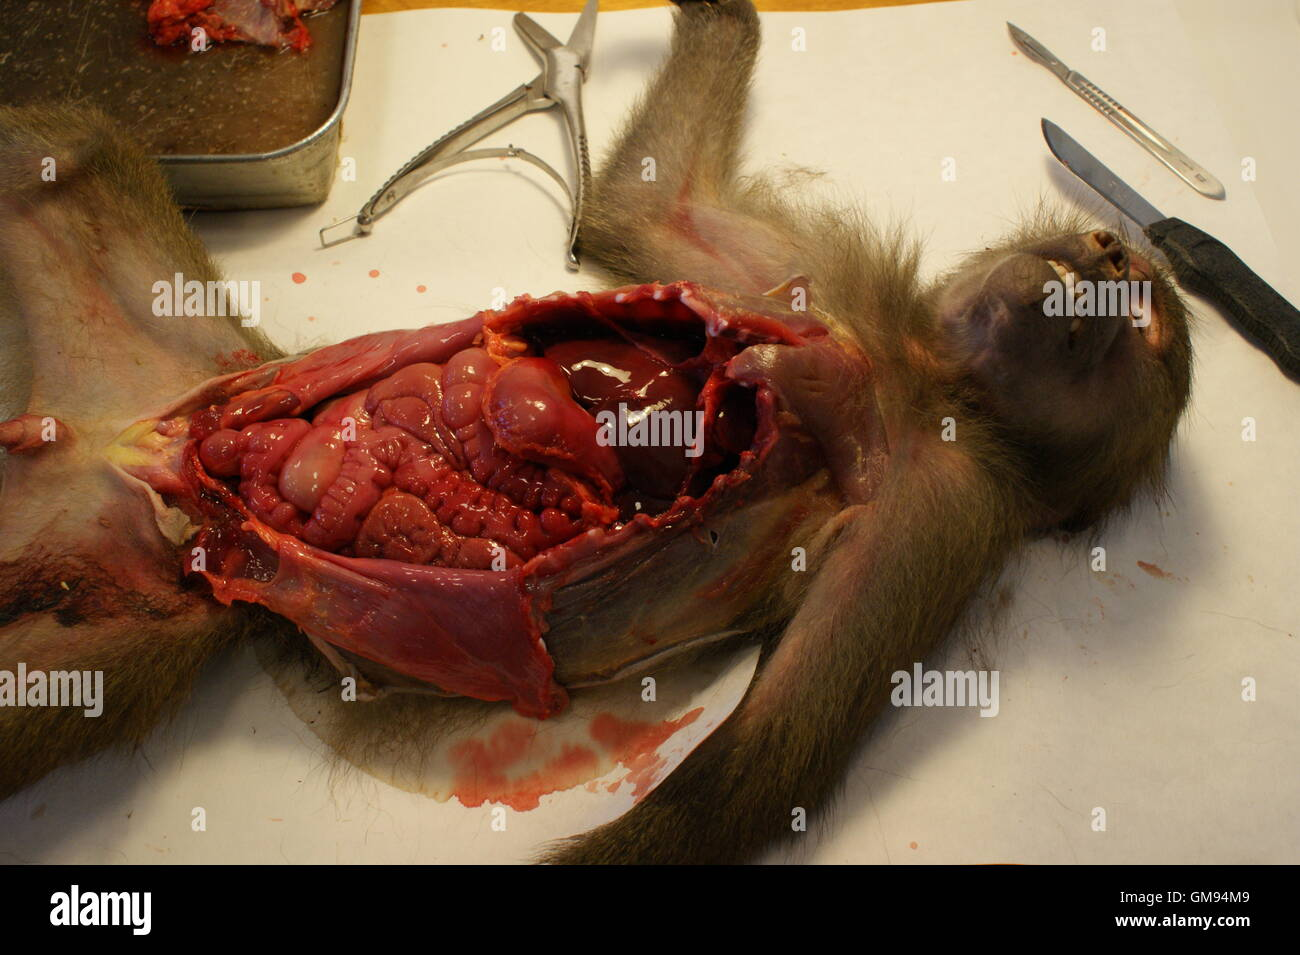 Cadaver Dissection Stock Photos Cadaver Dissection Stock Images